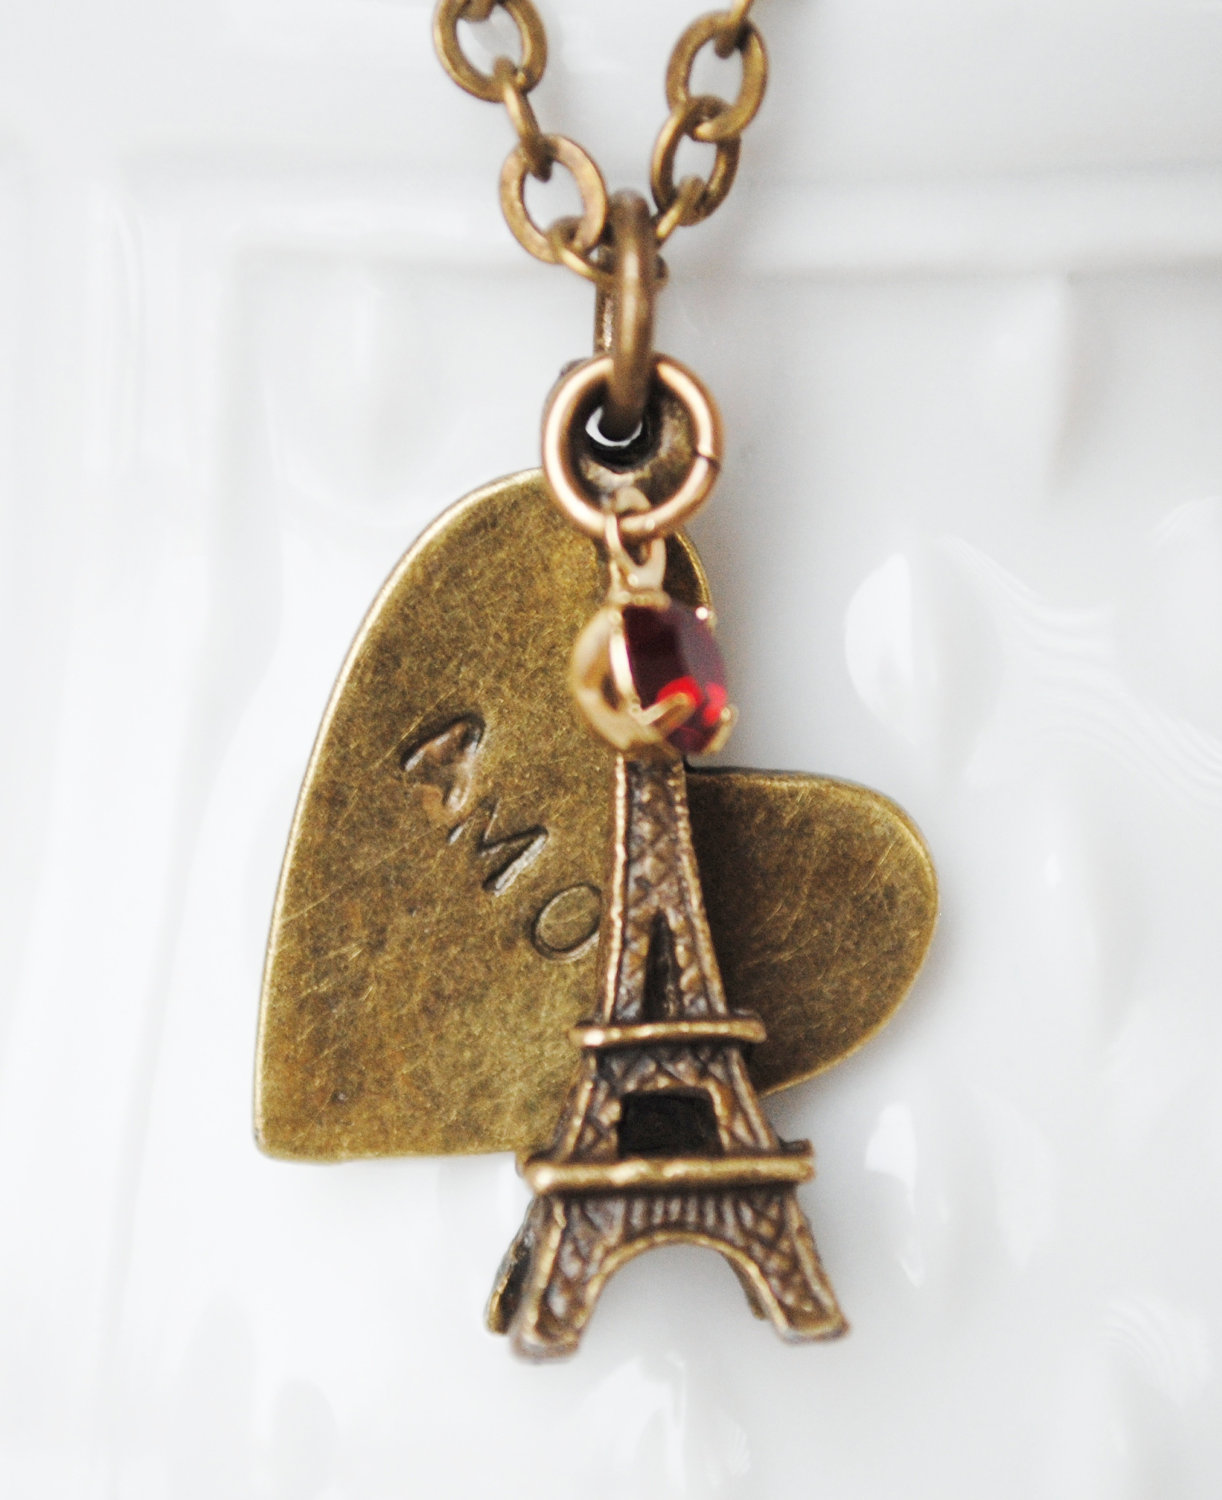 10 Pieces Of Jewelry - I love Paris (14)